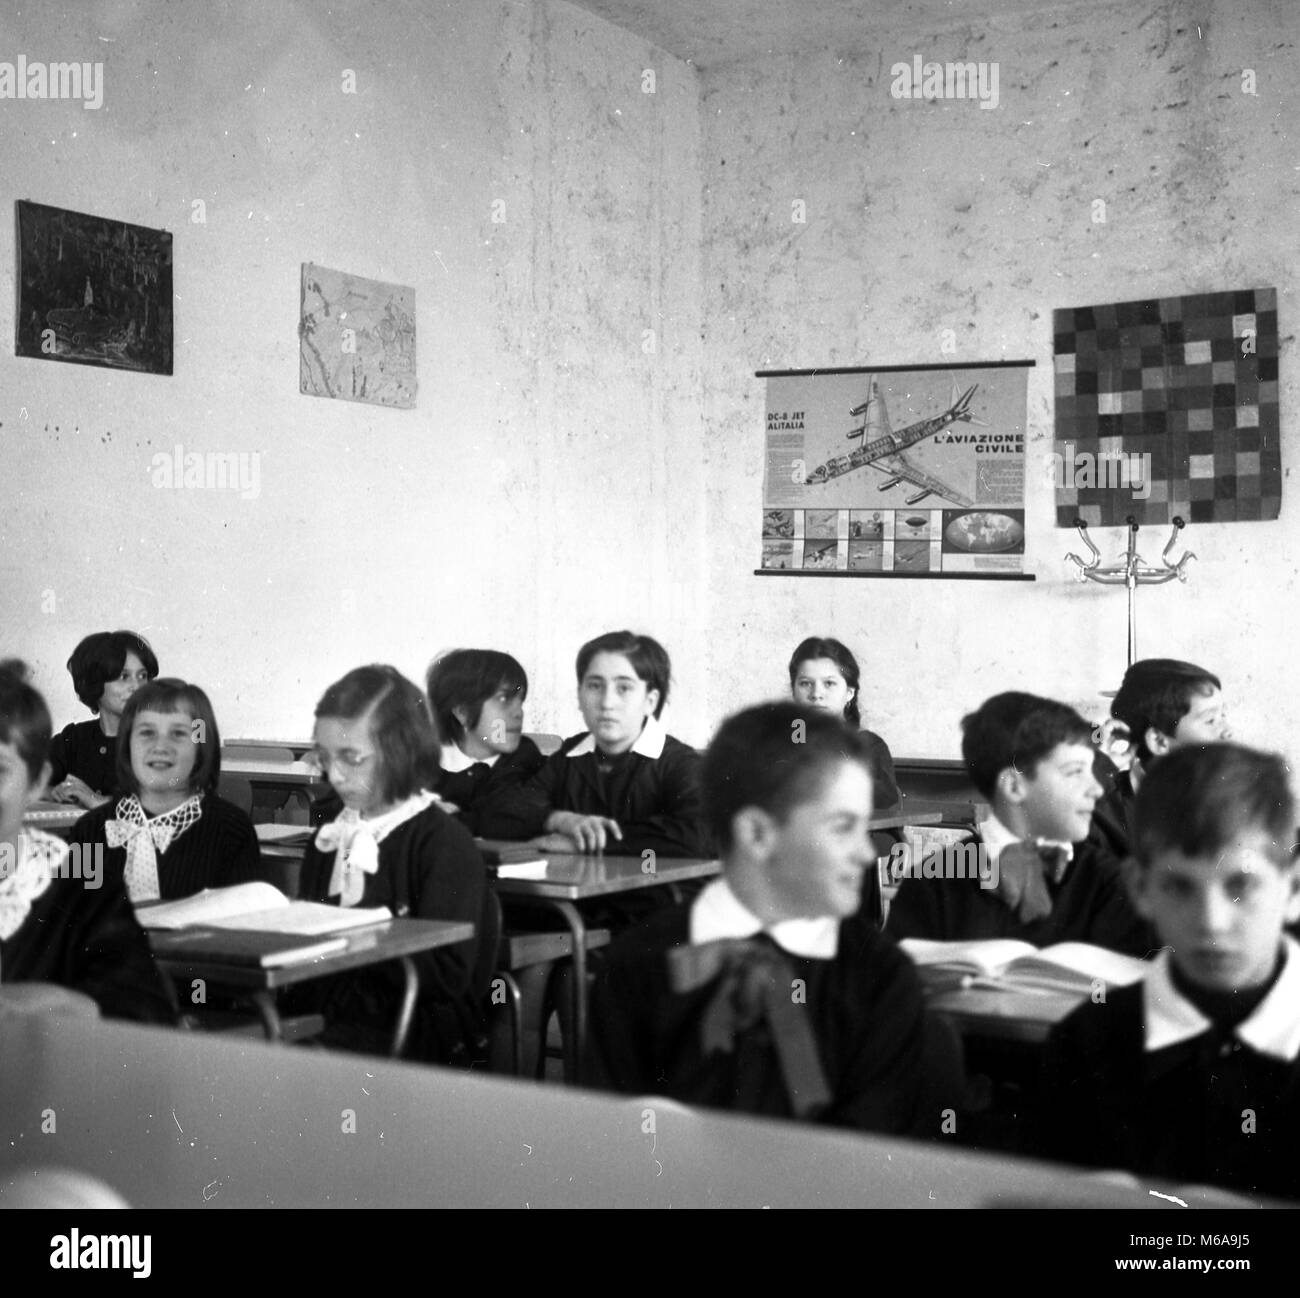 ELEMENTARY SCHOOL RETURNED BY STORE, FOR LACK OF AULE IN LIMBIATE, ALUMNI BETWEEN THE BANCHI YEAR 1968 (PHOTO DE - Stock Image